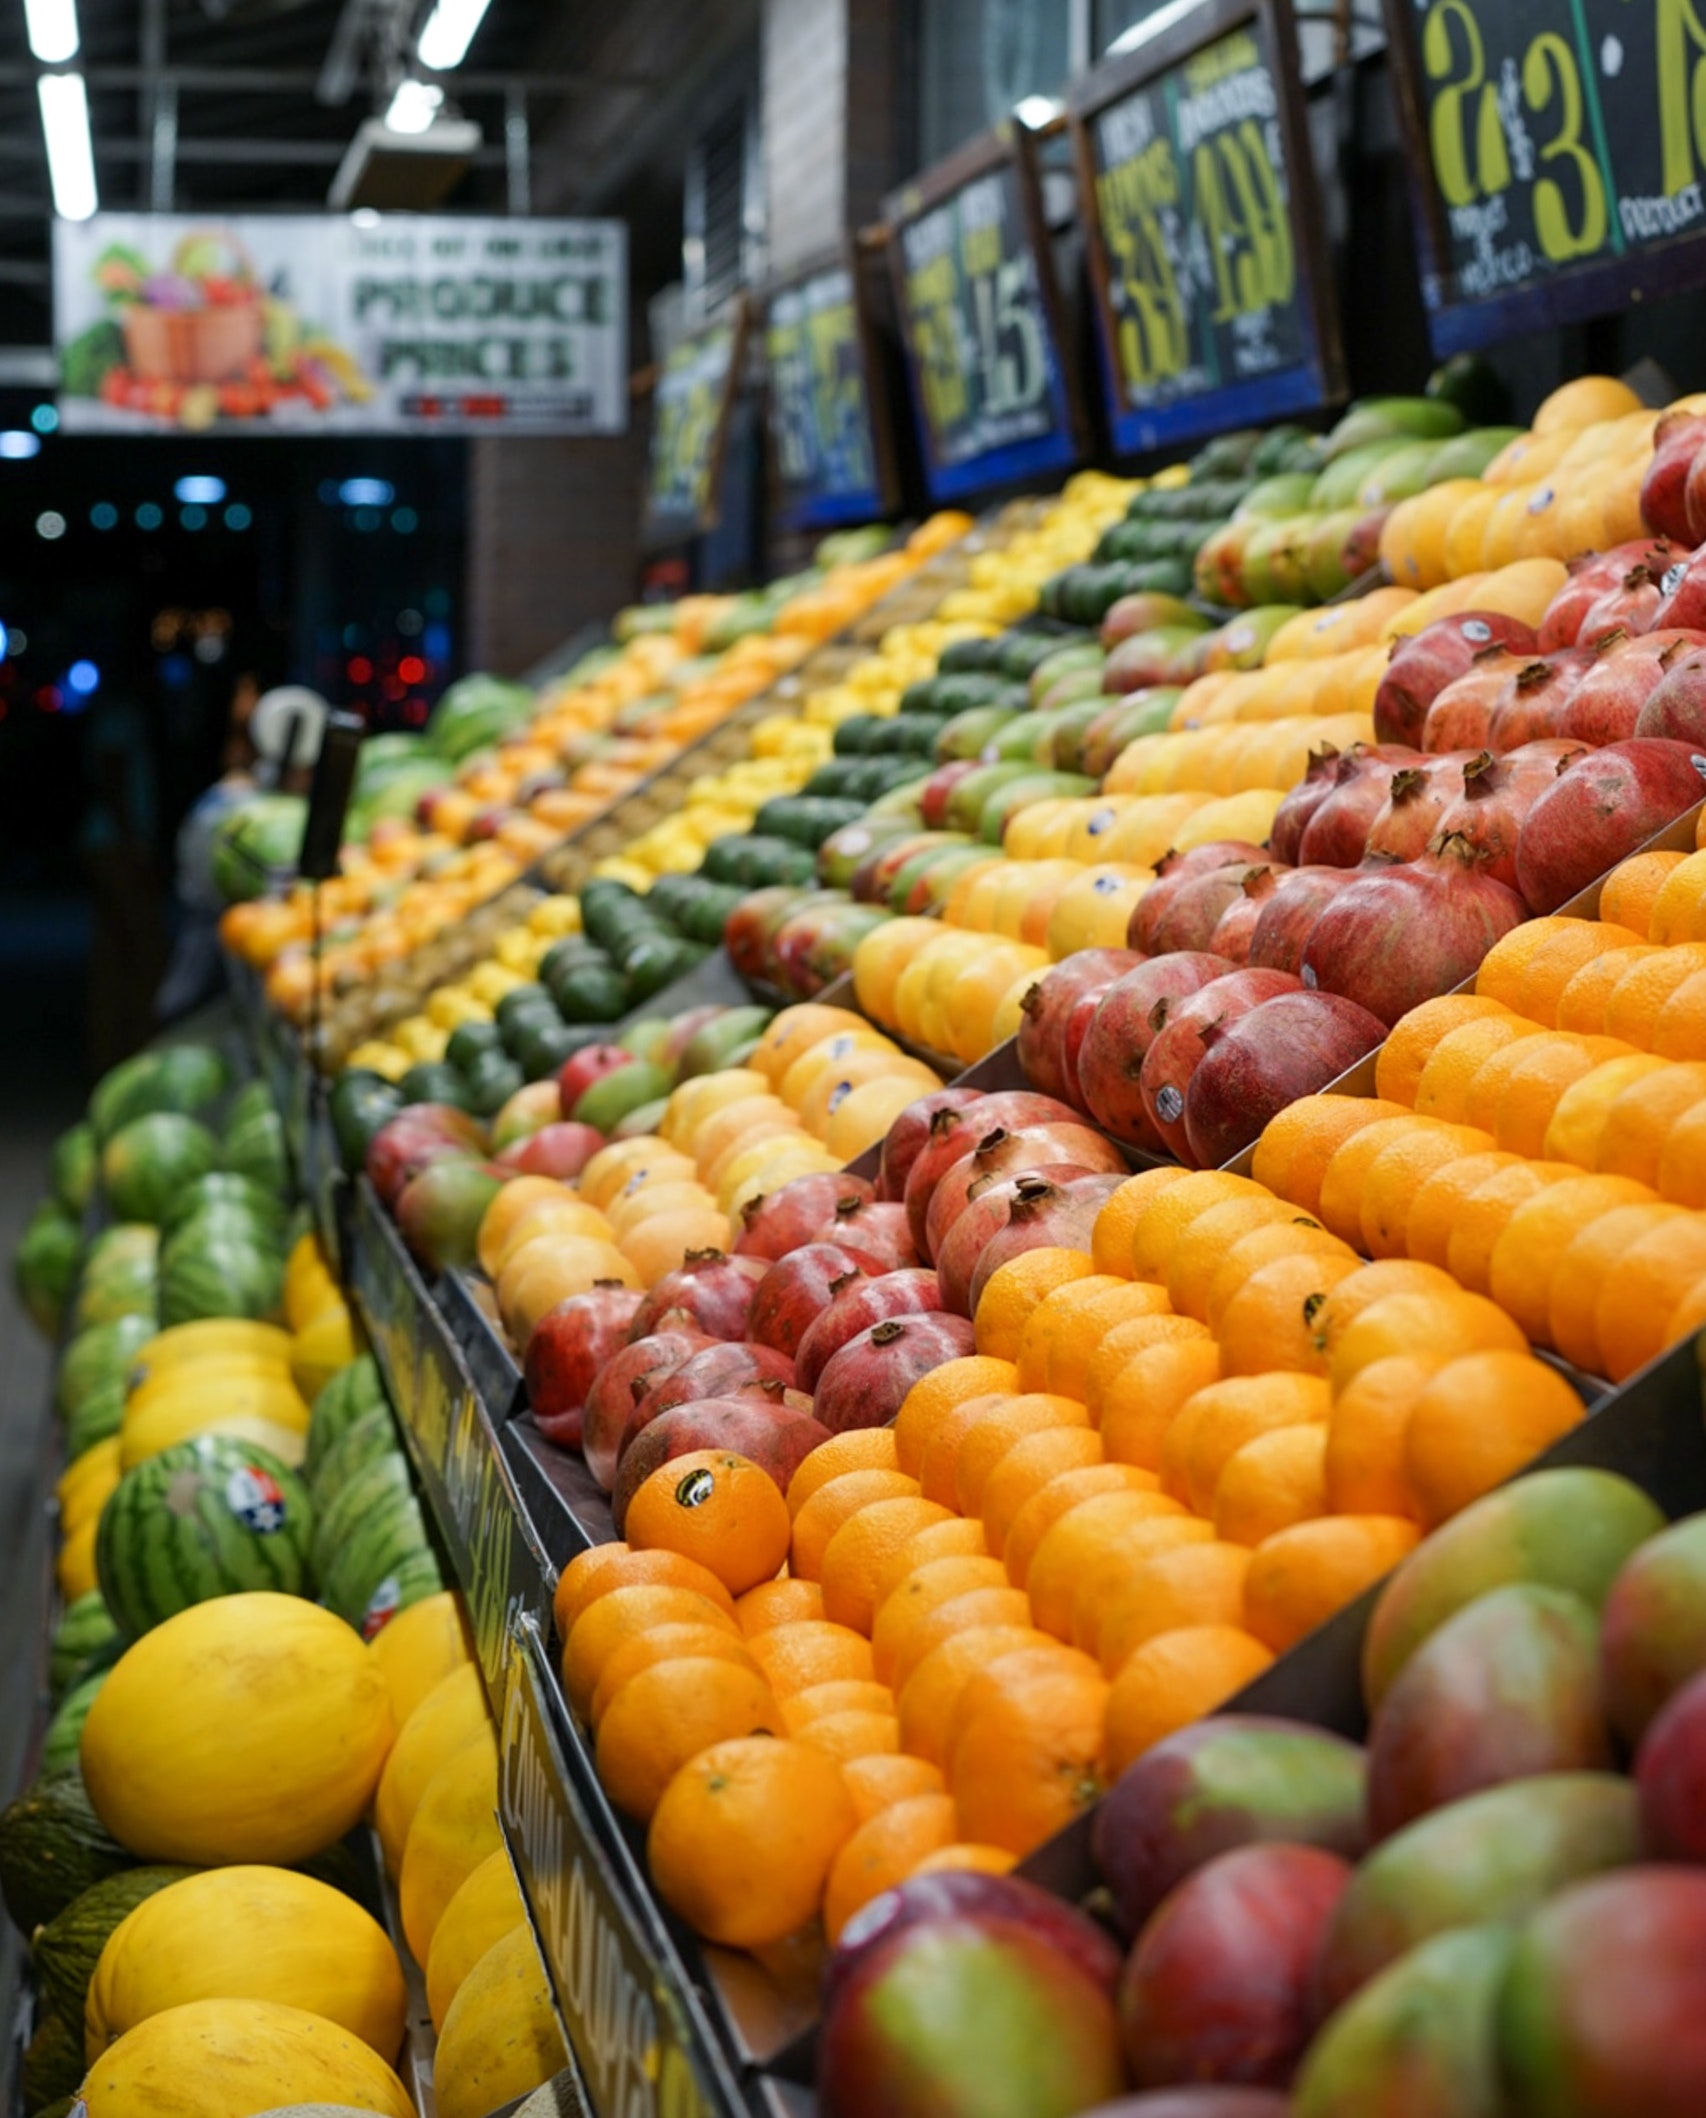 Shopping for Fruits and Vegetables During a Pandemic